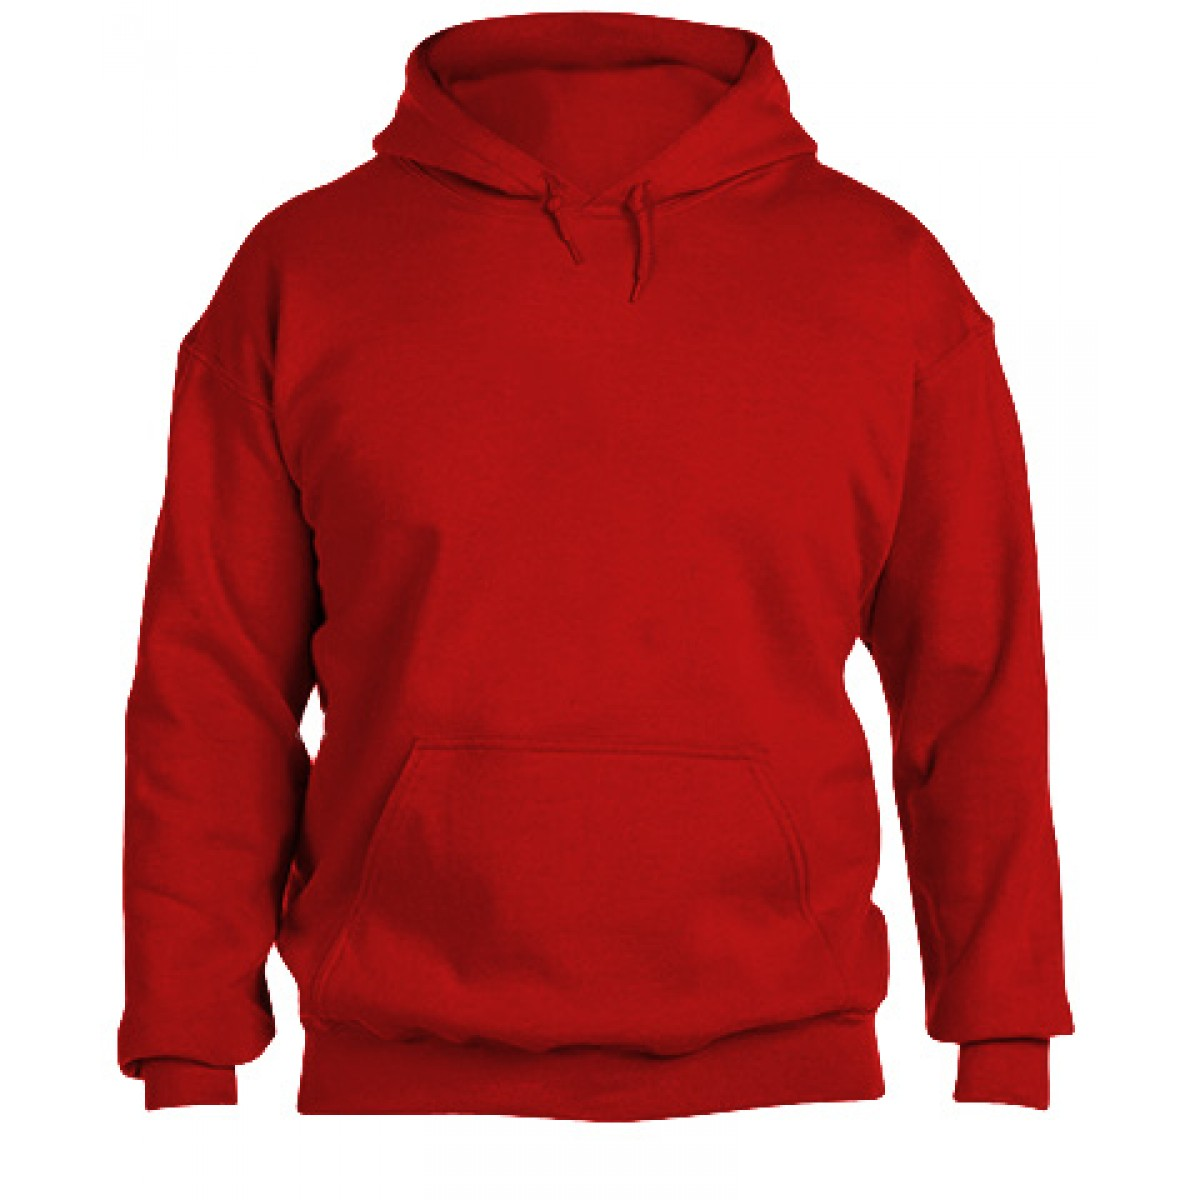 Hooded Sweatshirt 50/50 Heavy Blend -Red-2XL